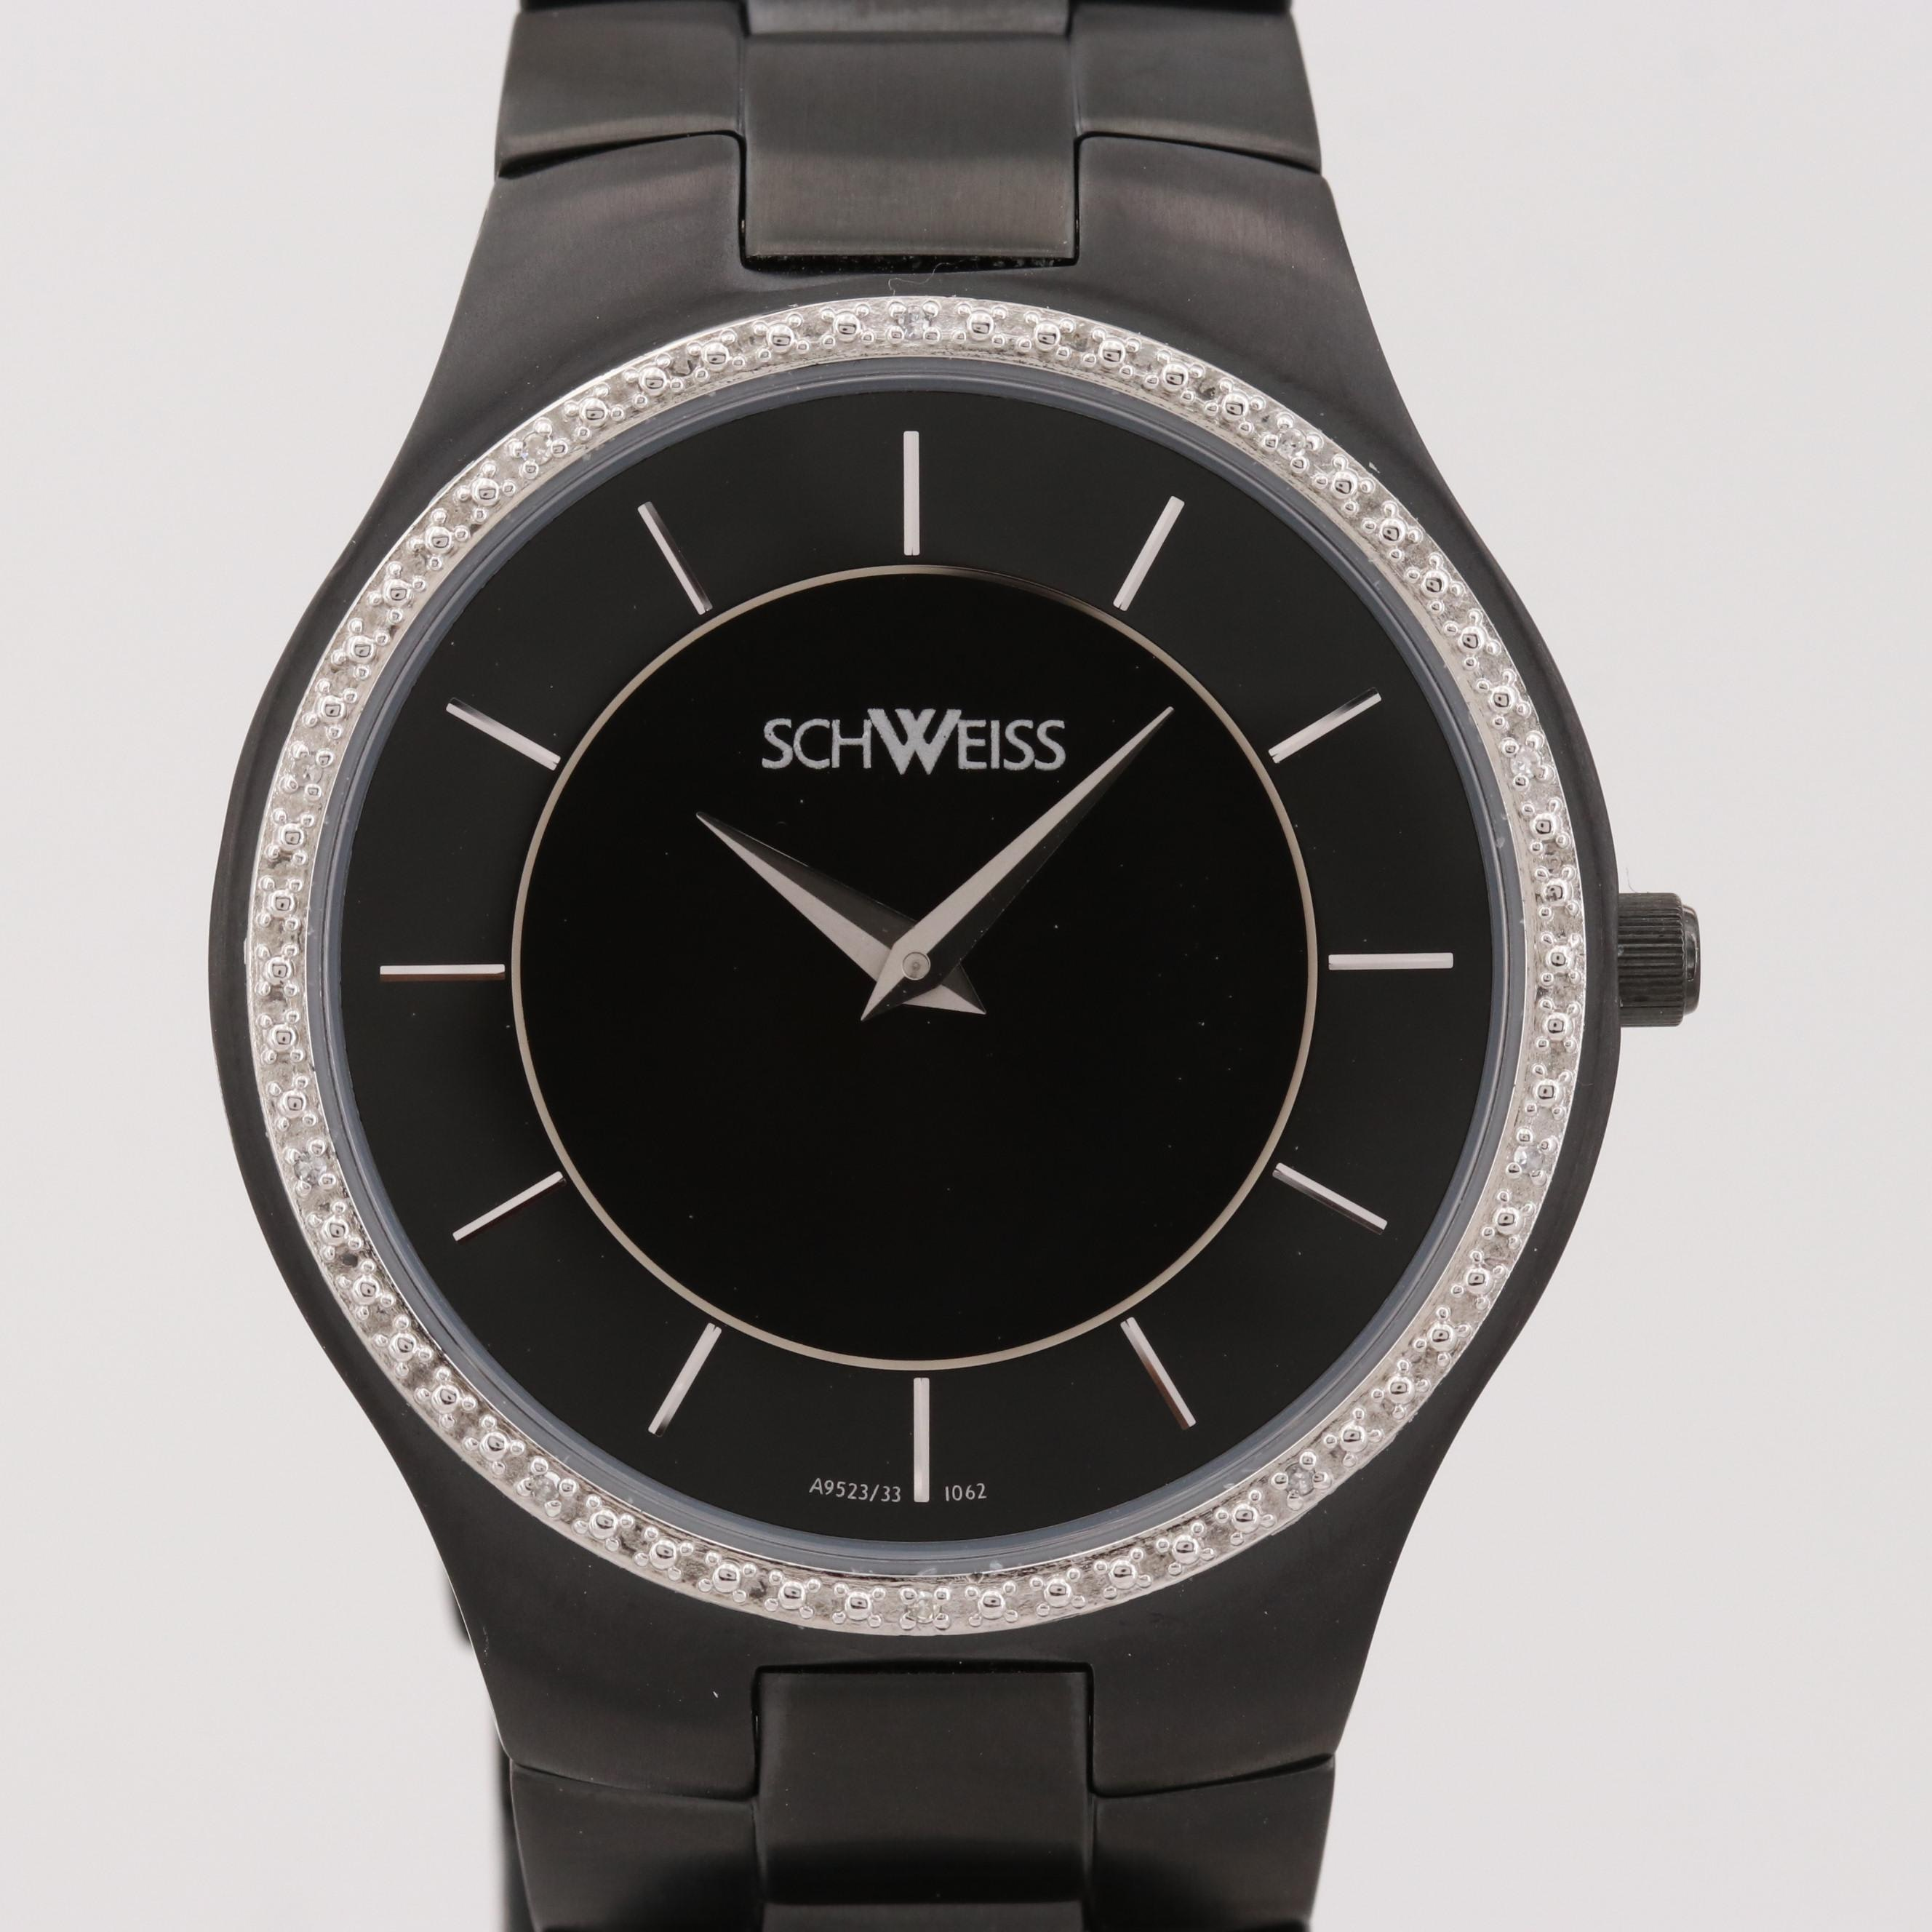 Schweiss Black Ion Plated Stainless Steel Quartz Wristwatch